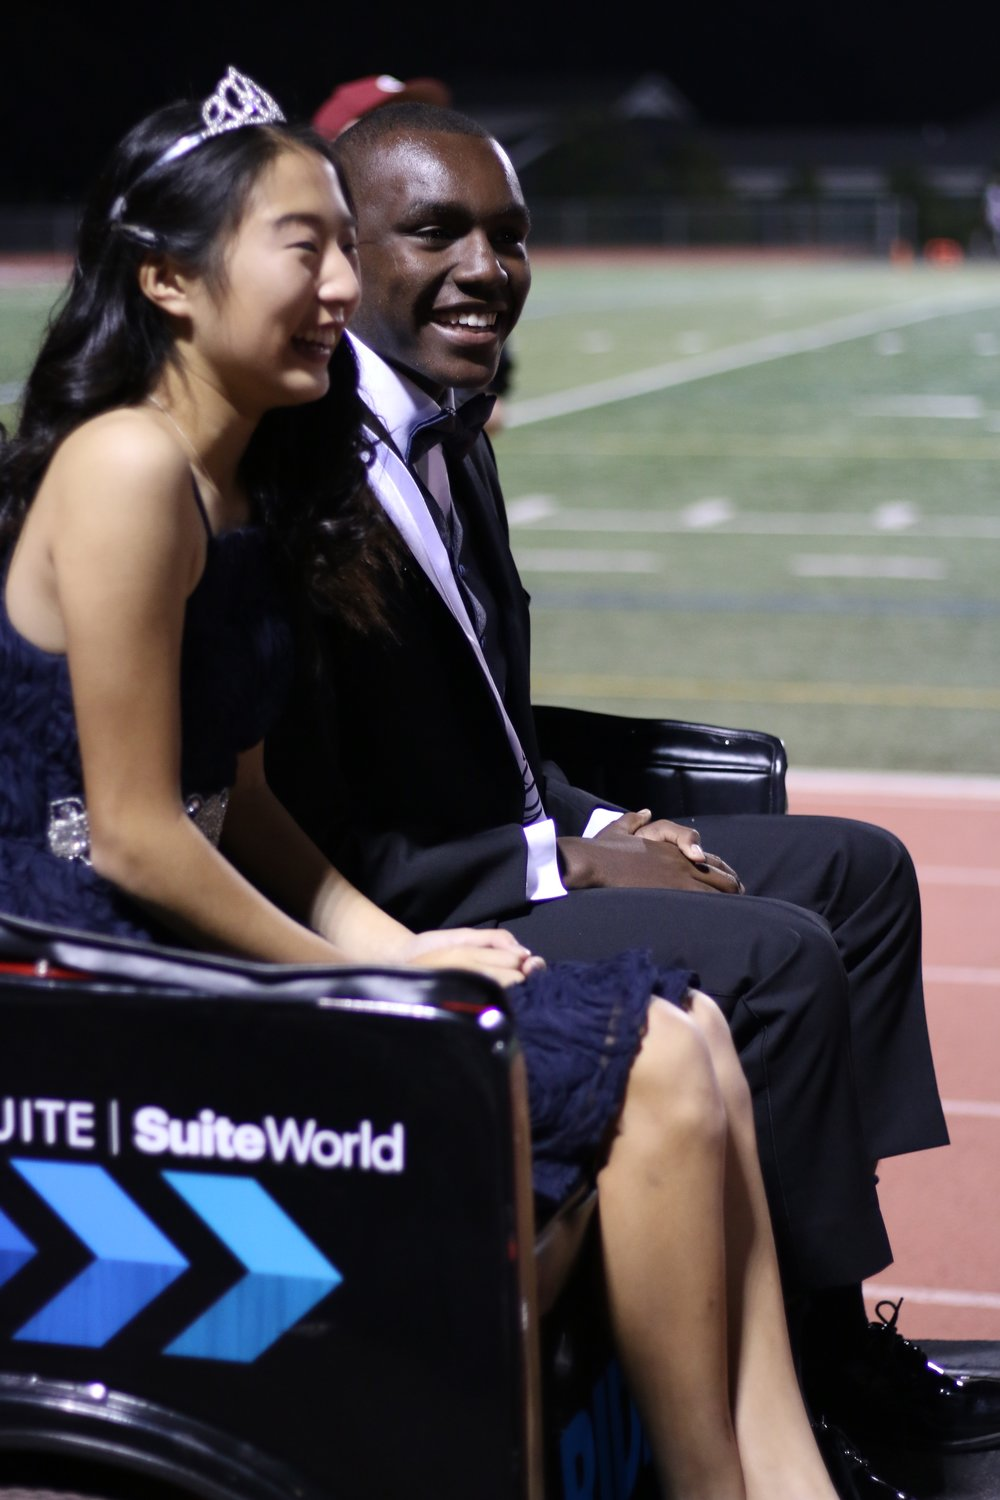 Homecoming court: Emmanuel Muriuki and Angela Ding (Sophomores)